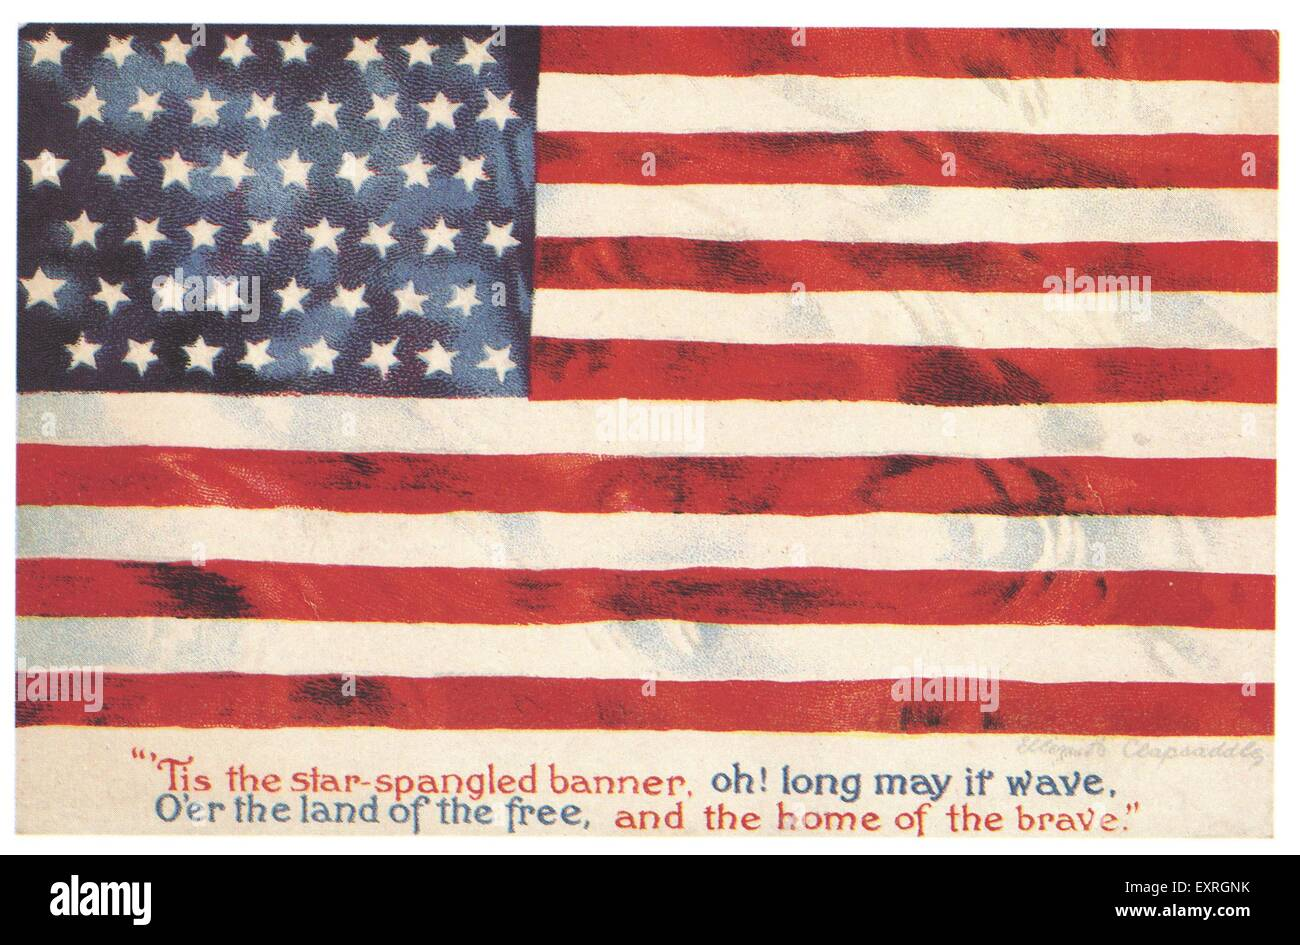 1900s USA Flags Stars and Stripes July 4th Greetings Card - Stock Image